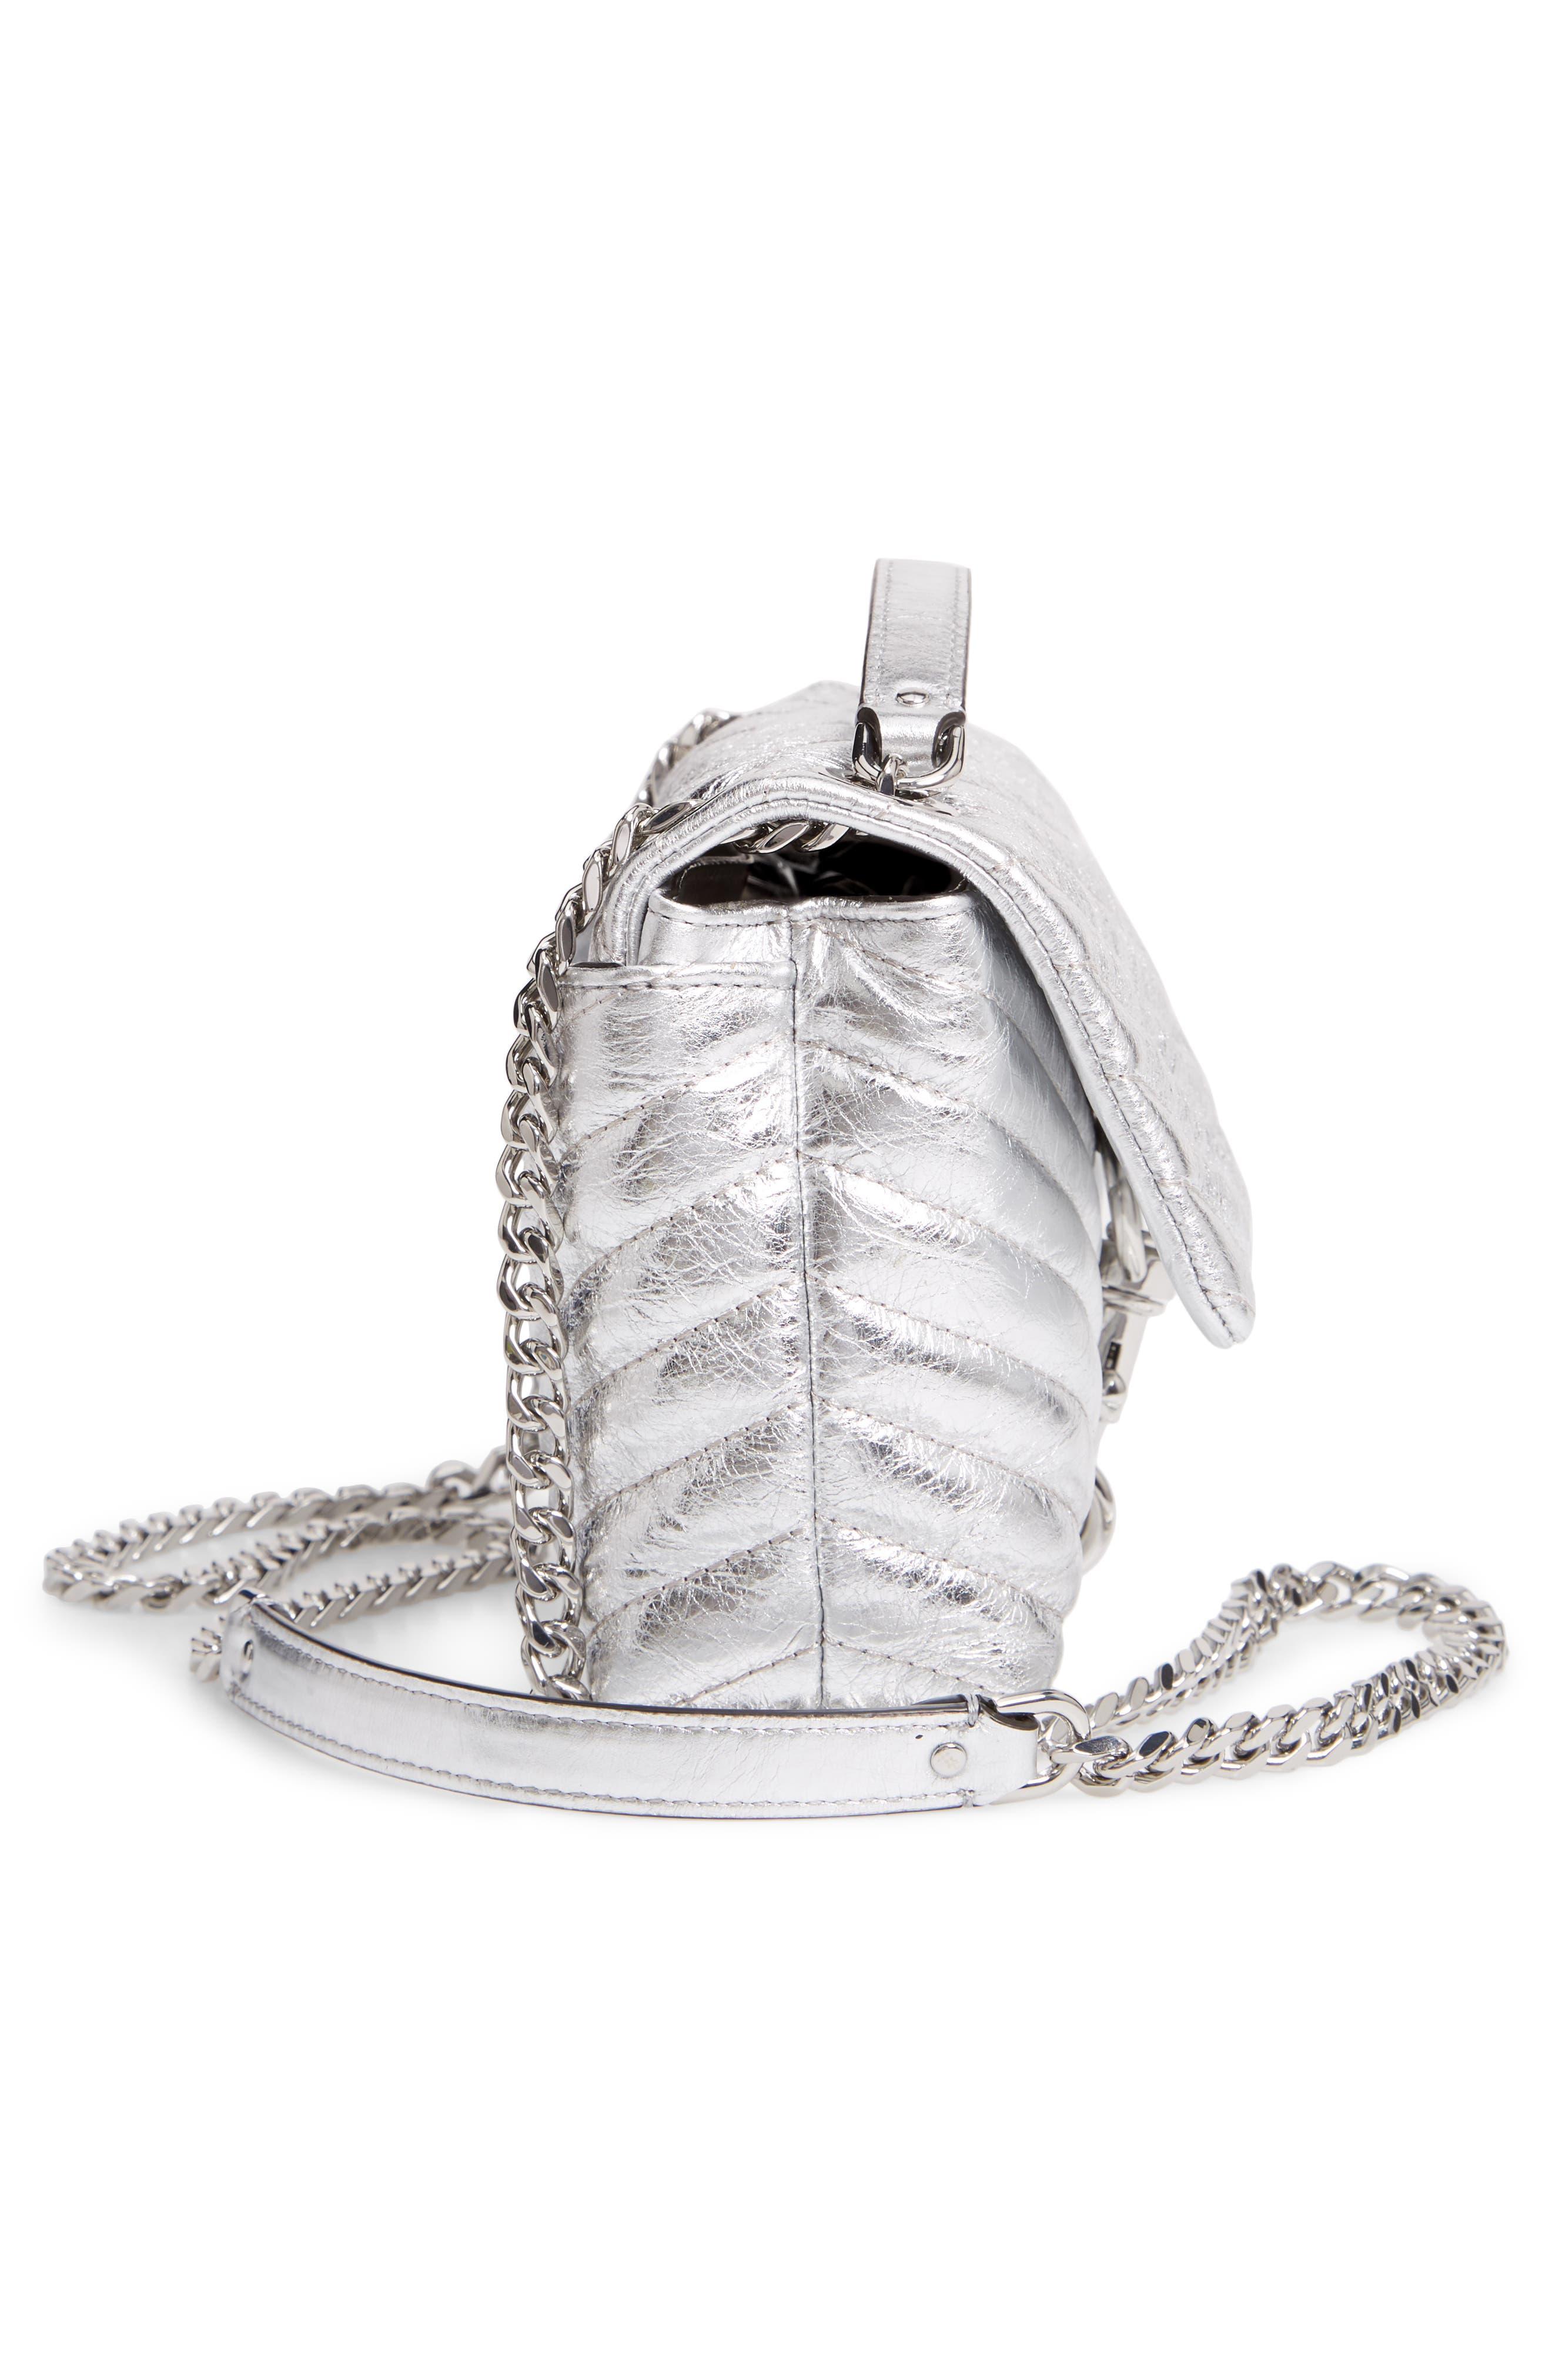 REBECCA MINKOFF, Edie Metallic Leather Shoulder Bag, Alternate thumbnail 6, color, SILVER